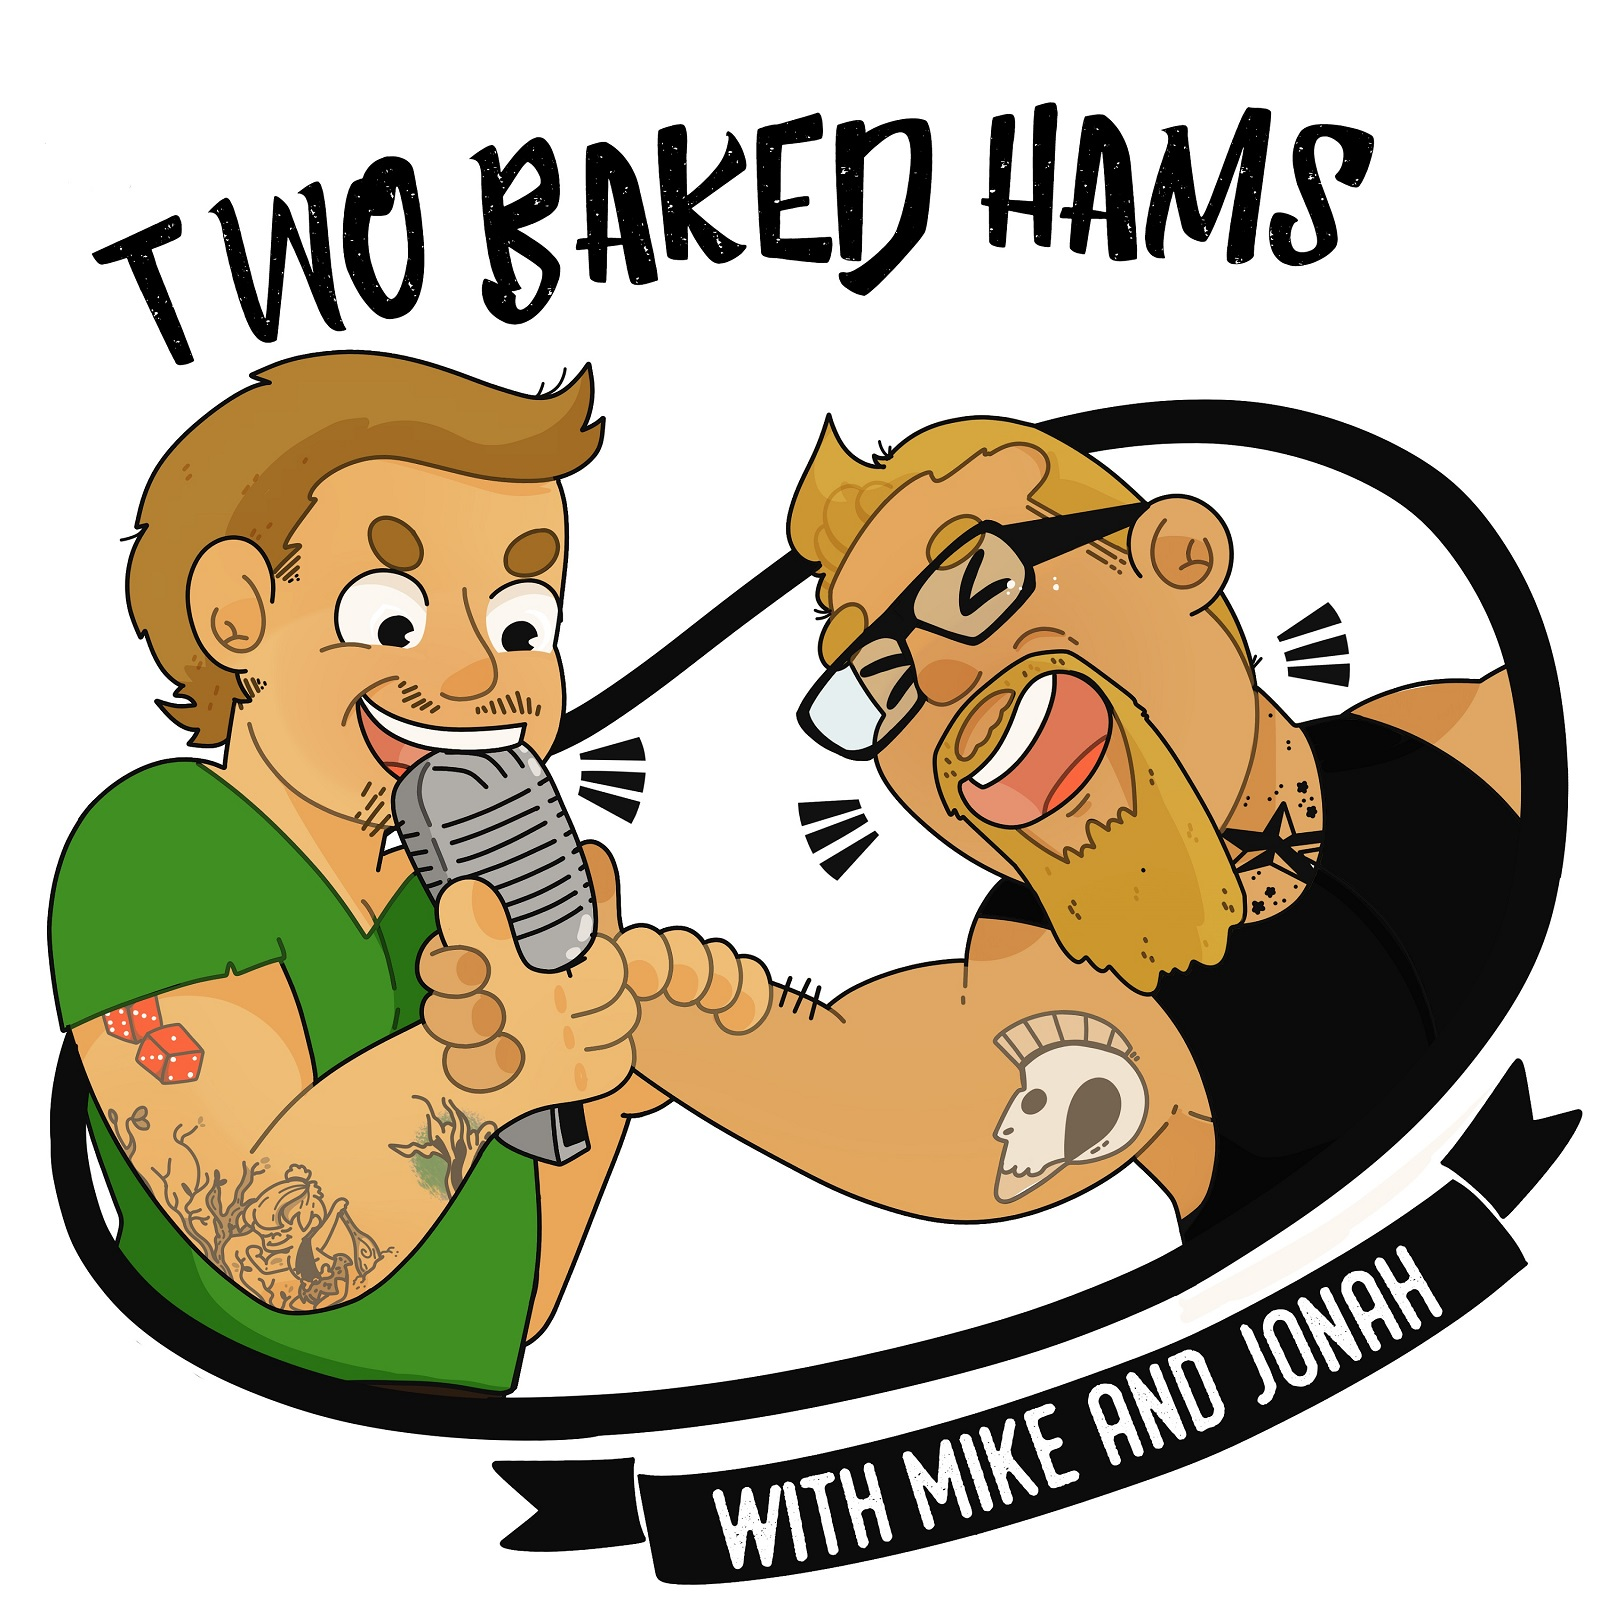 Two Baked Hams with Mike and Jonah